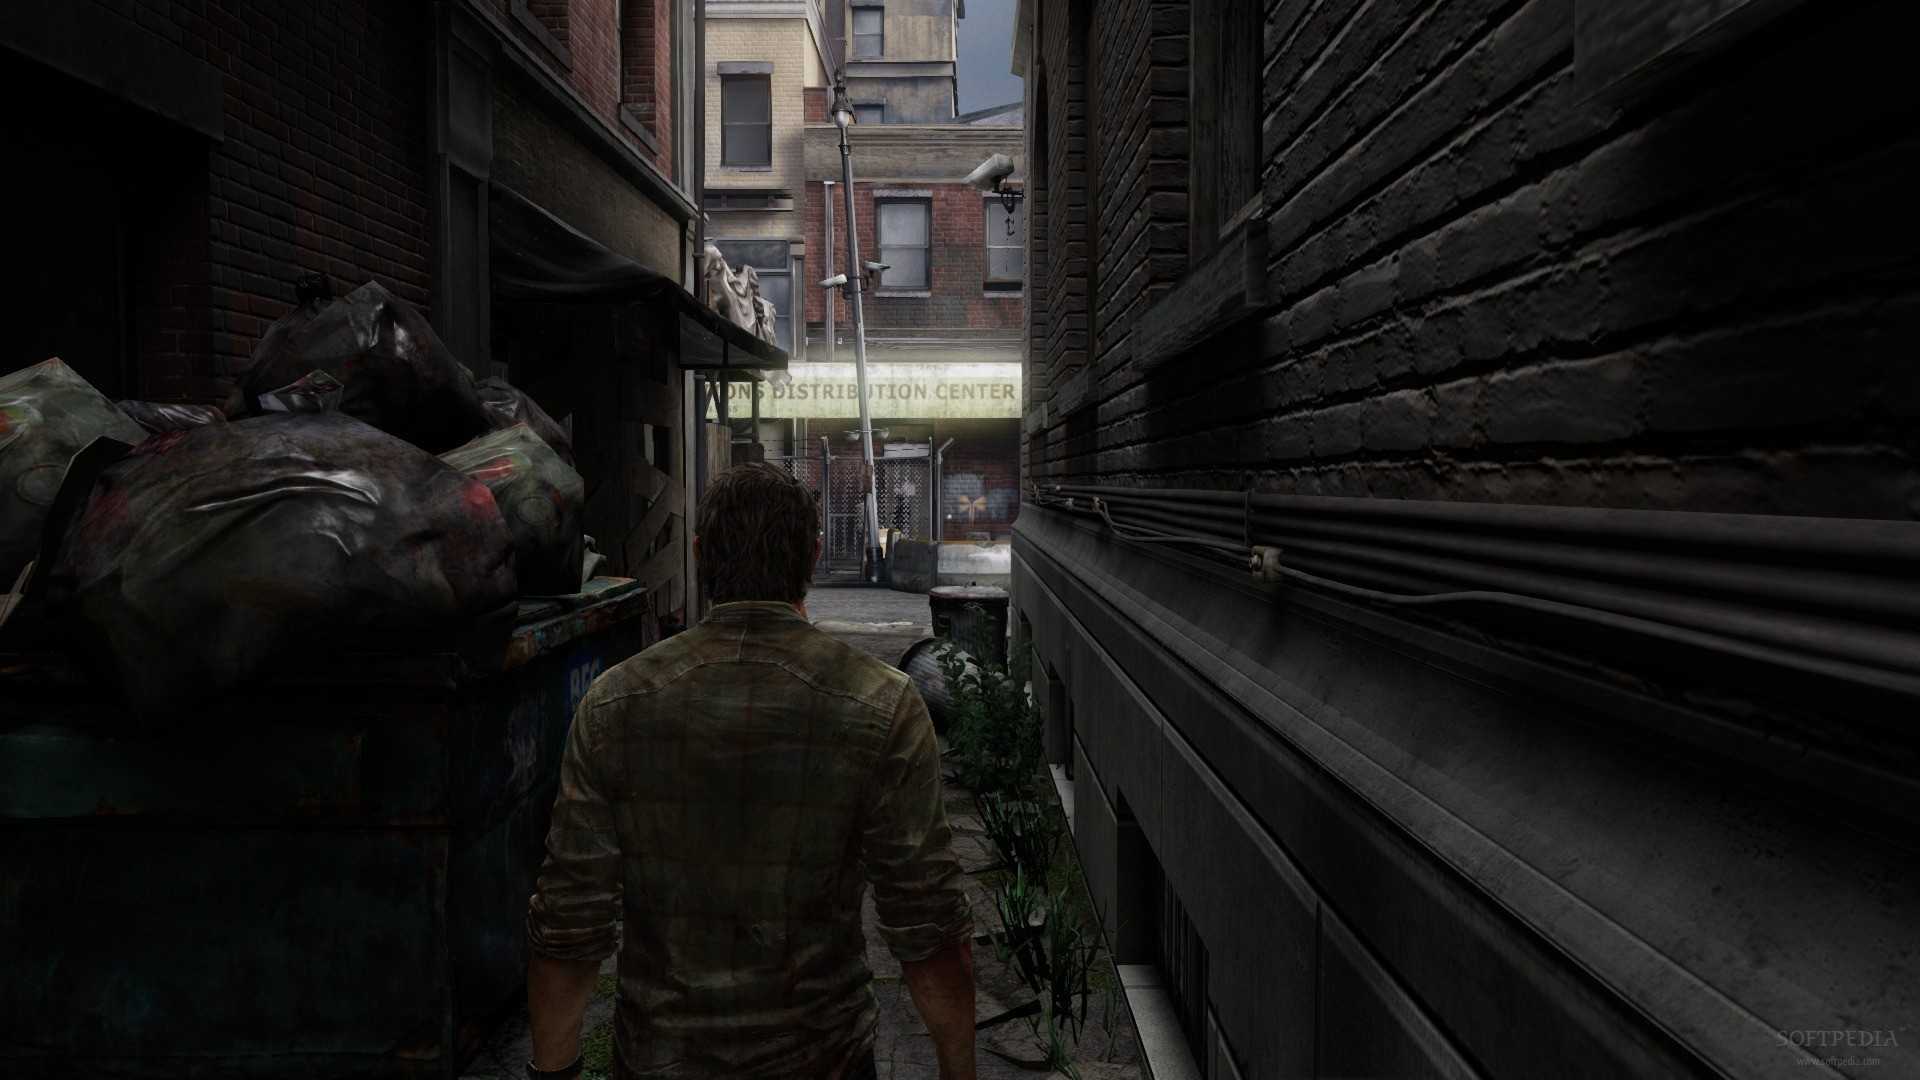 last of us matchmaking not working Joel with his daughter sarah, facing military soldier in the beginning of the last of us, joel arrives home late from work, putting sarah to bed after watching television together.